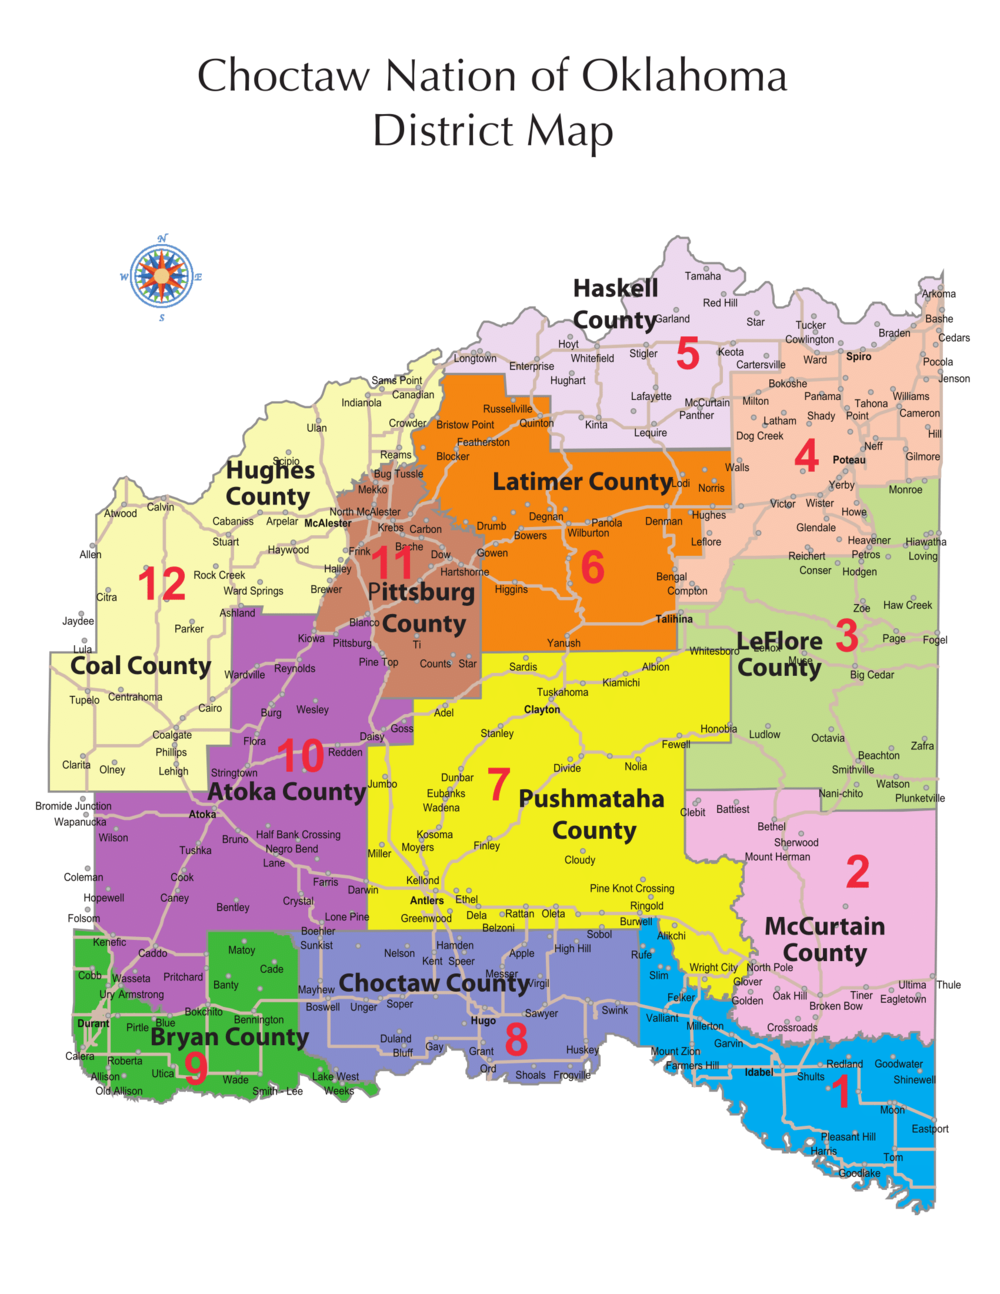 Current district map of the Choctaw Nation of Oklahoma. Choctaw Nation District map.png